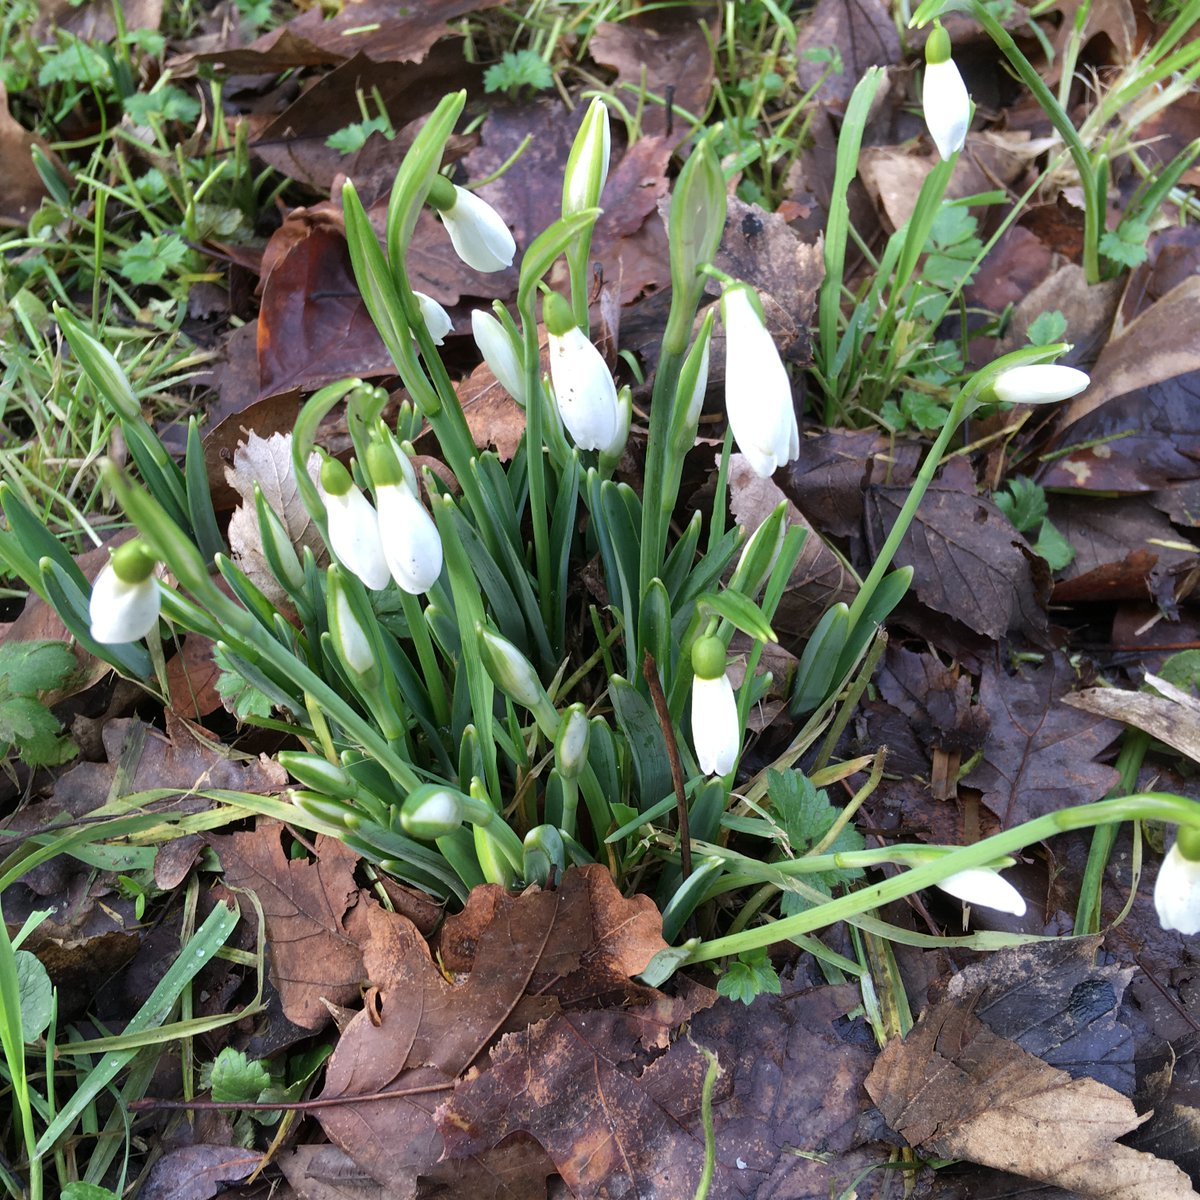 'Percy Picton' Snowdrop name jumped out at me! Alan Street talks to @pollymweston about his life long passion for Snowdrops on Open Country on @BBCRadio4 listen again on #Radio4 Sounds.